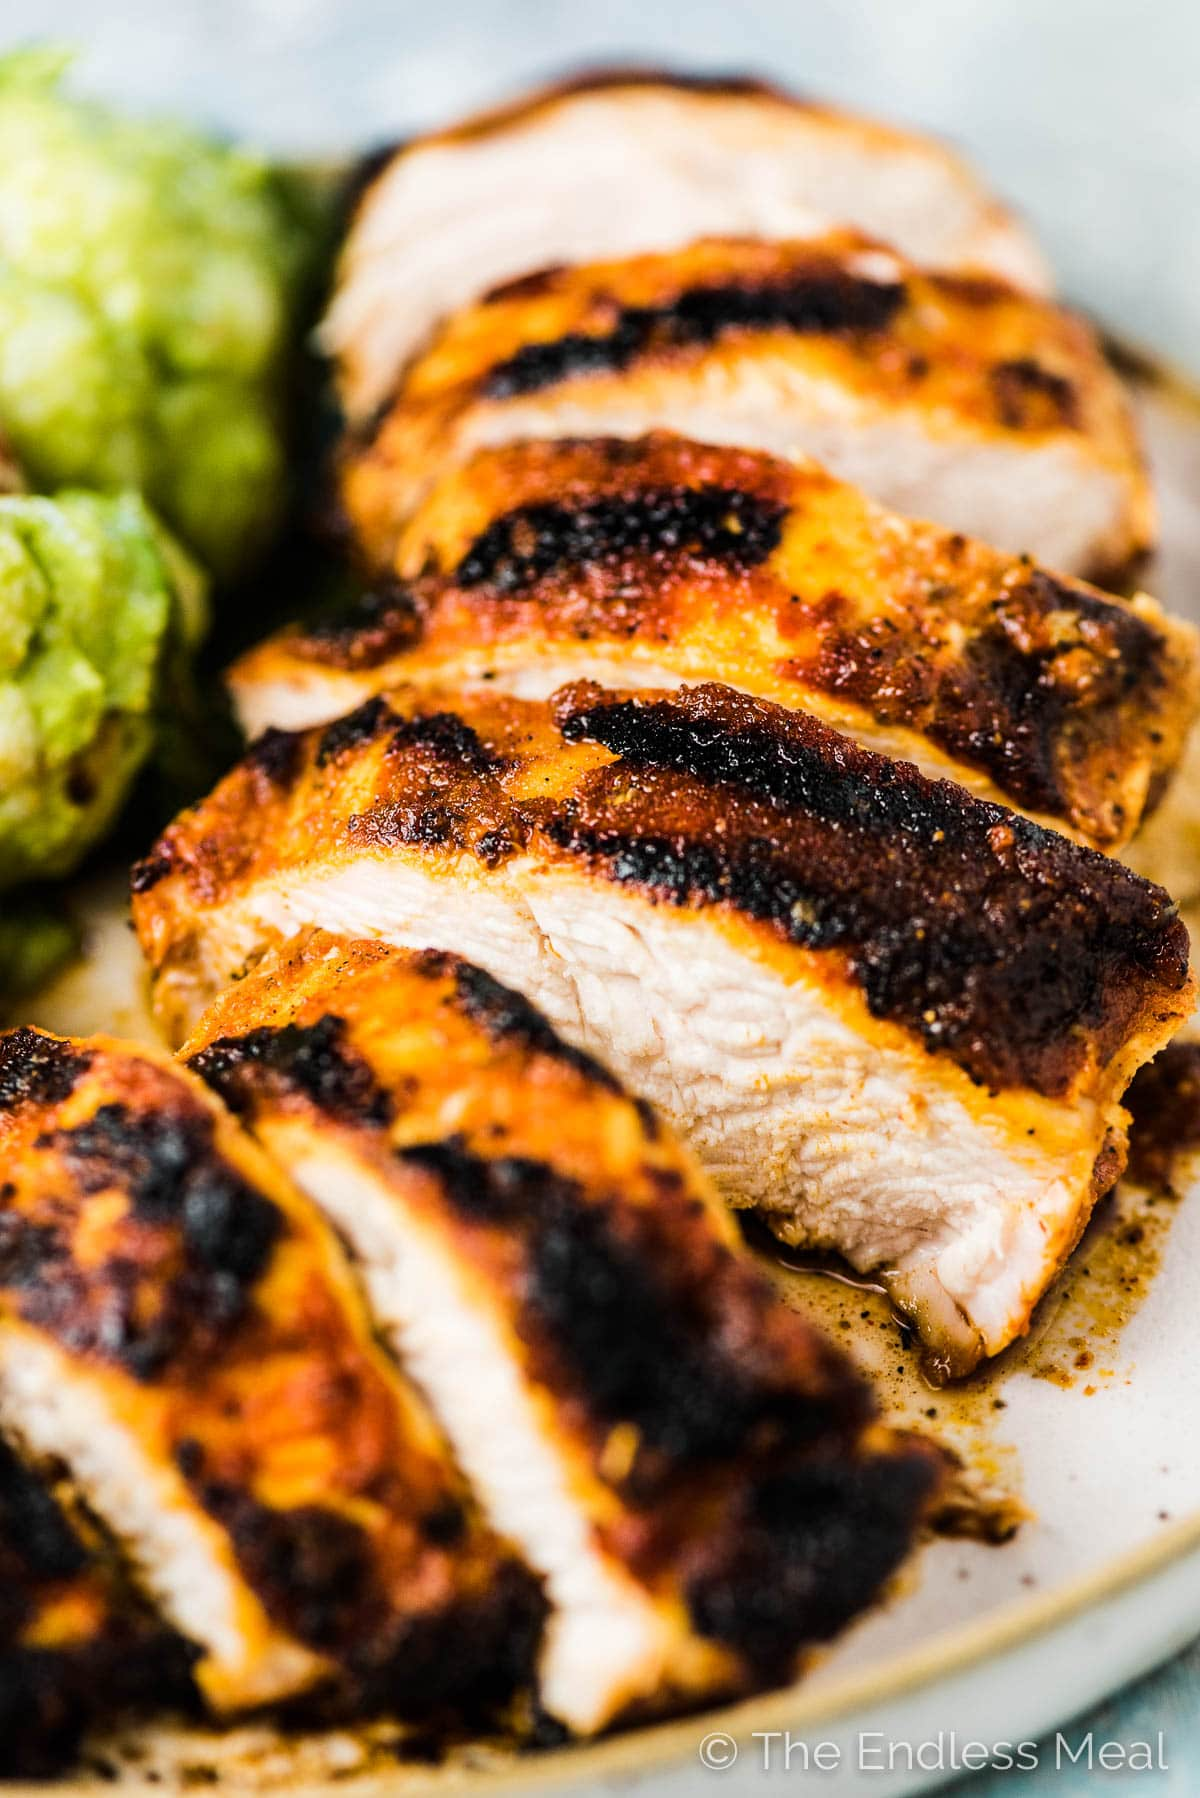 A close up of a slice of juicy grilled chicken breast.